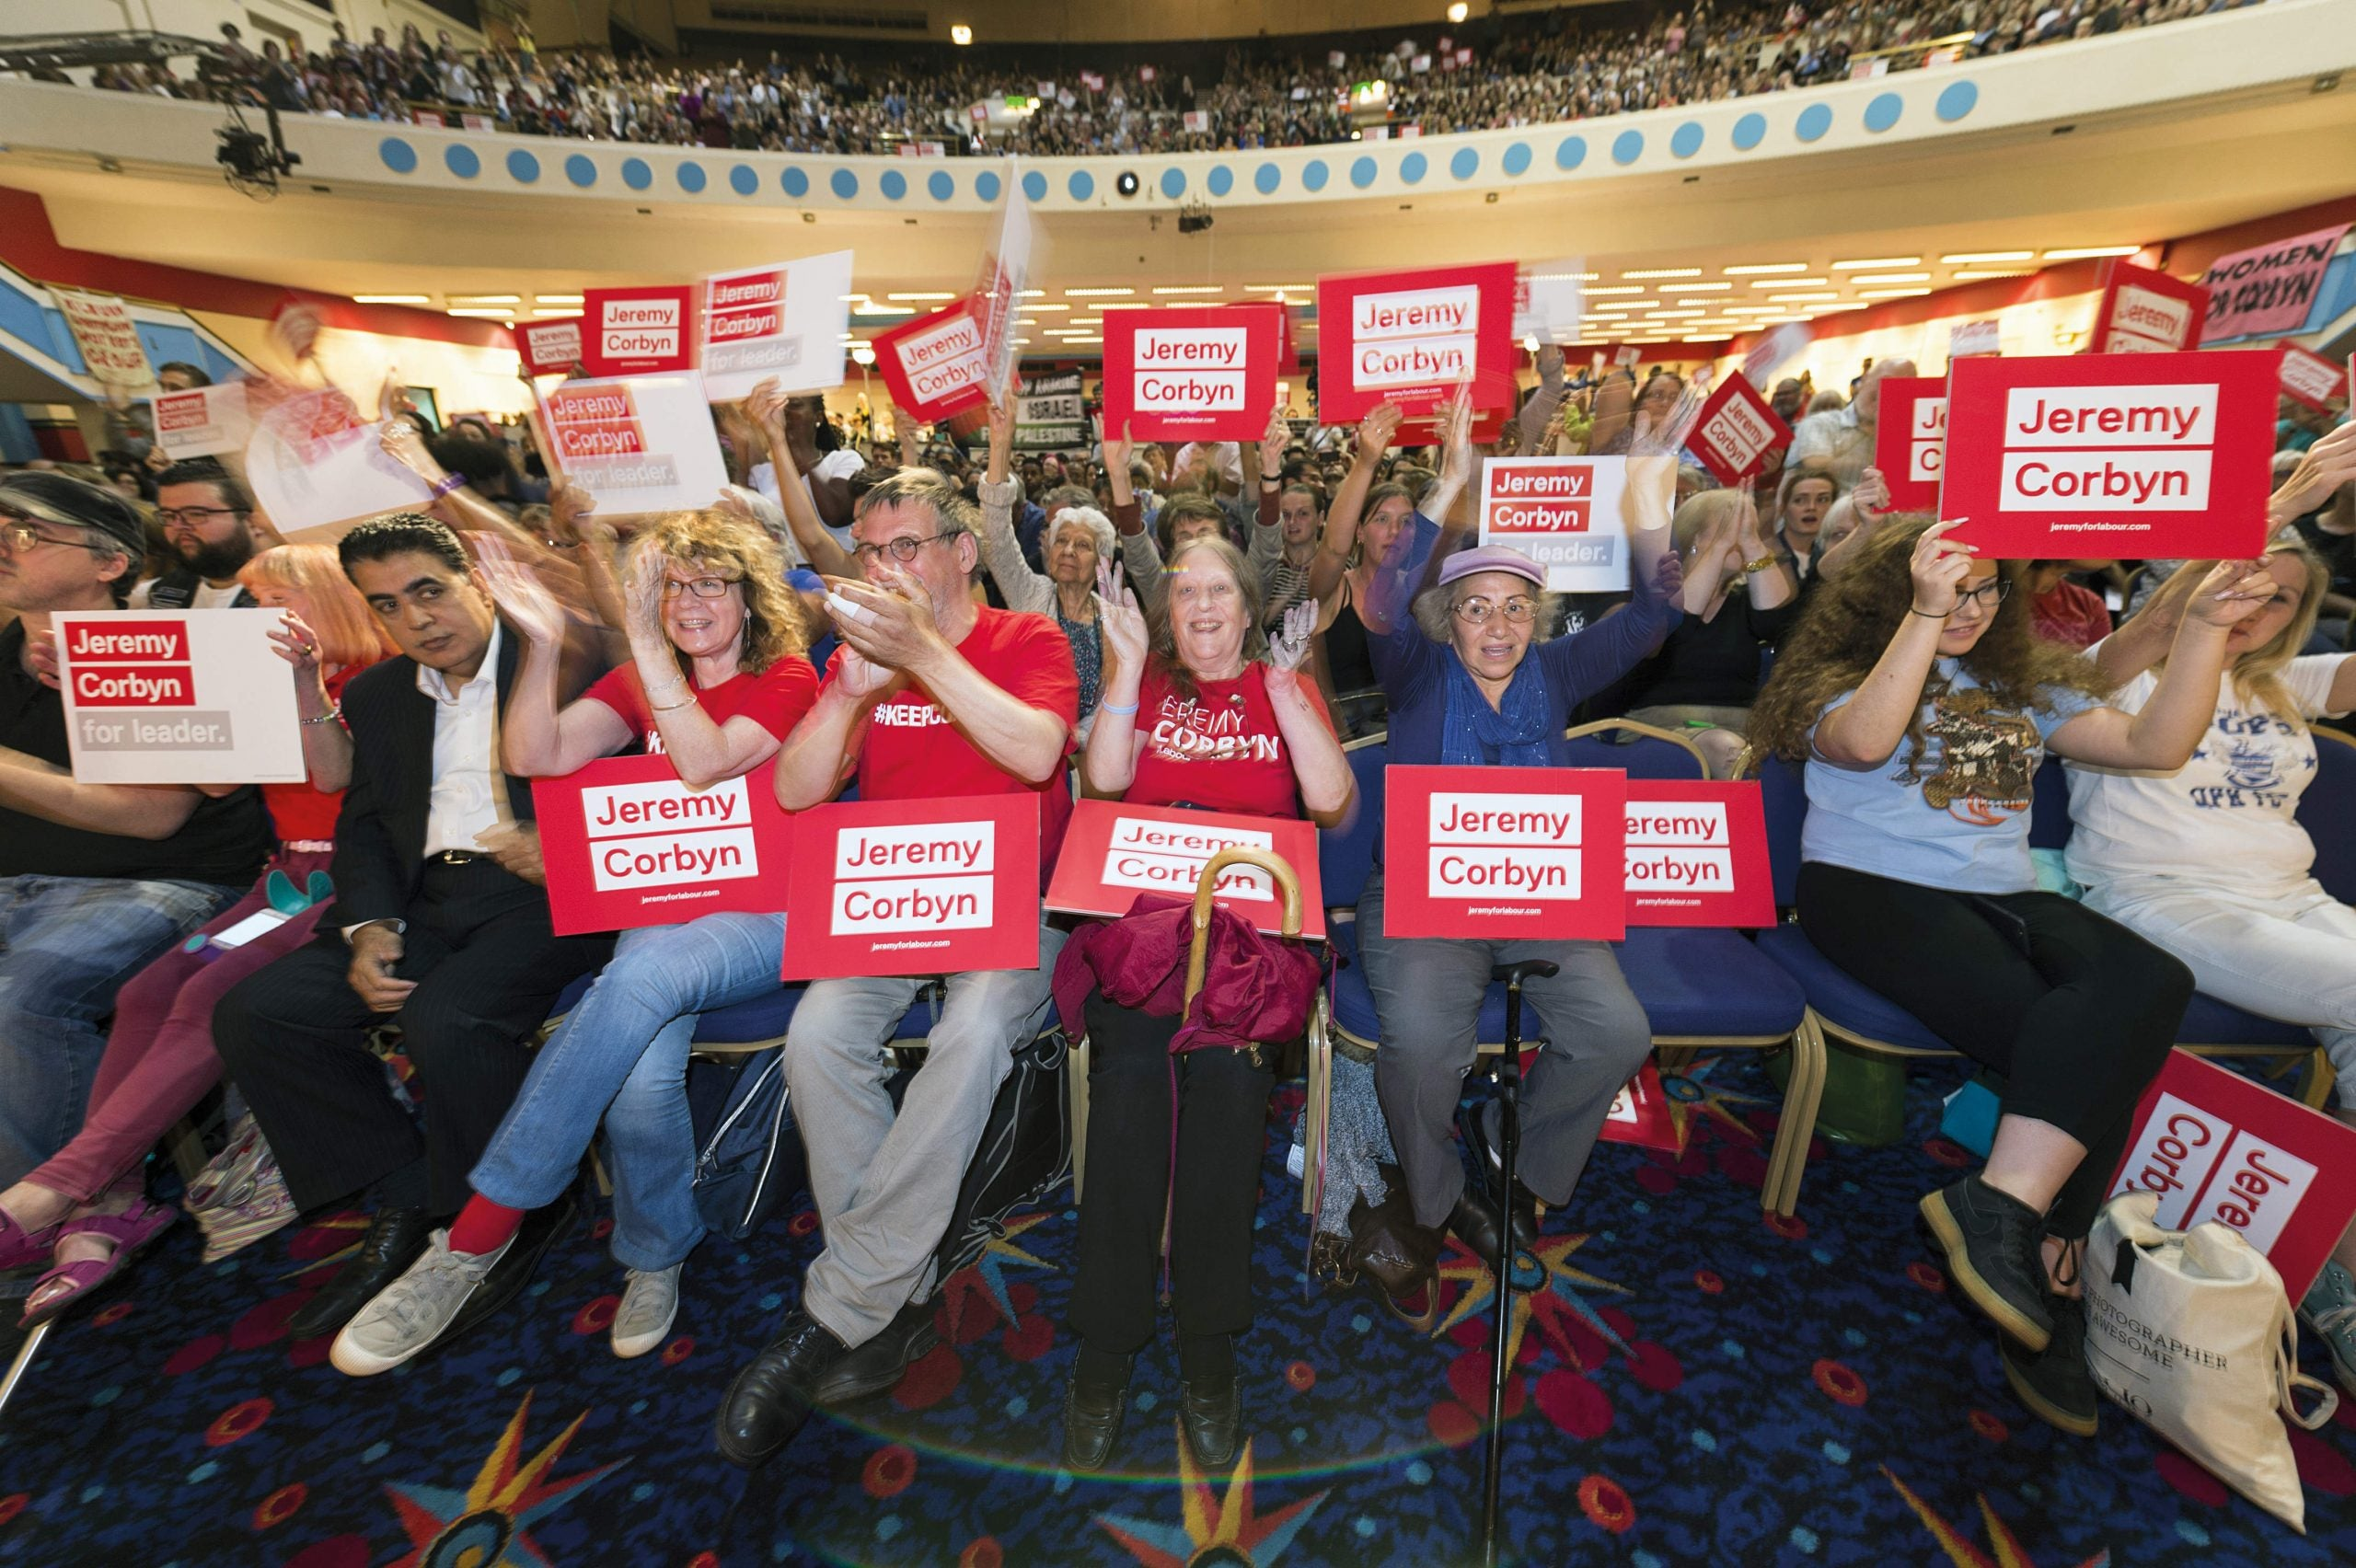 Losing Momentum: how Jeremy Corbyn's support group ran out of steam